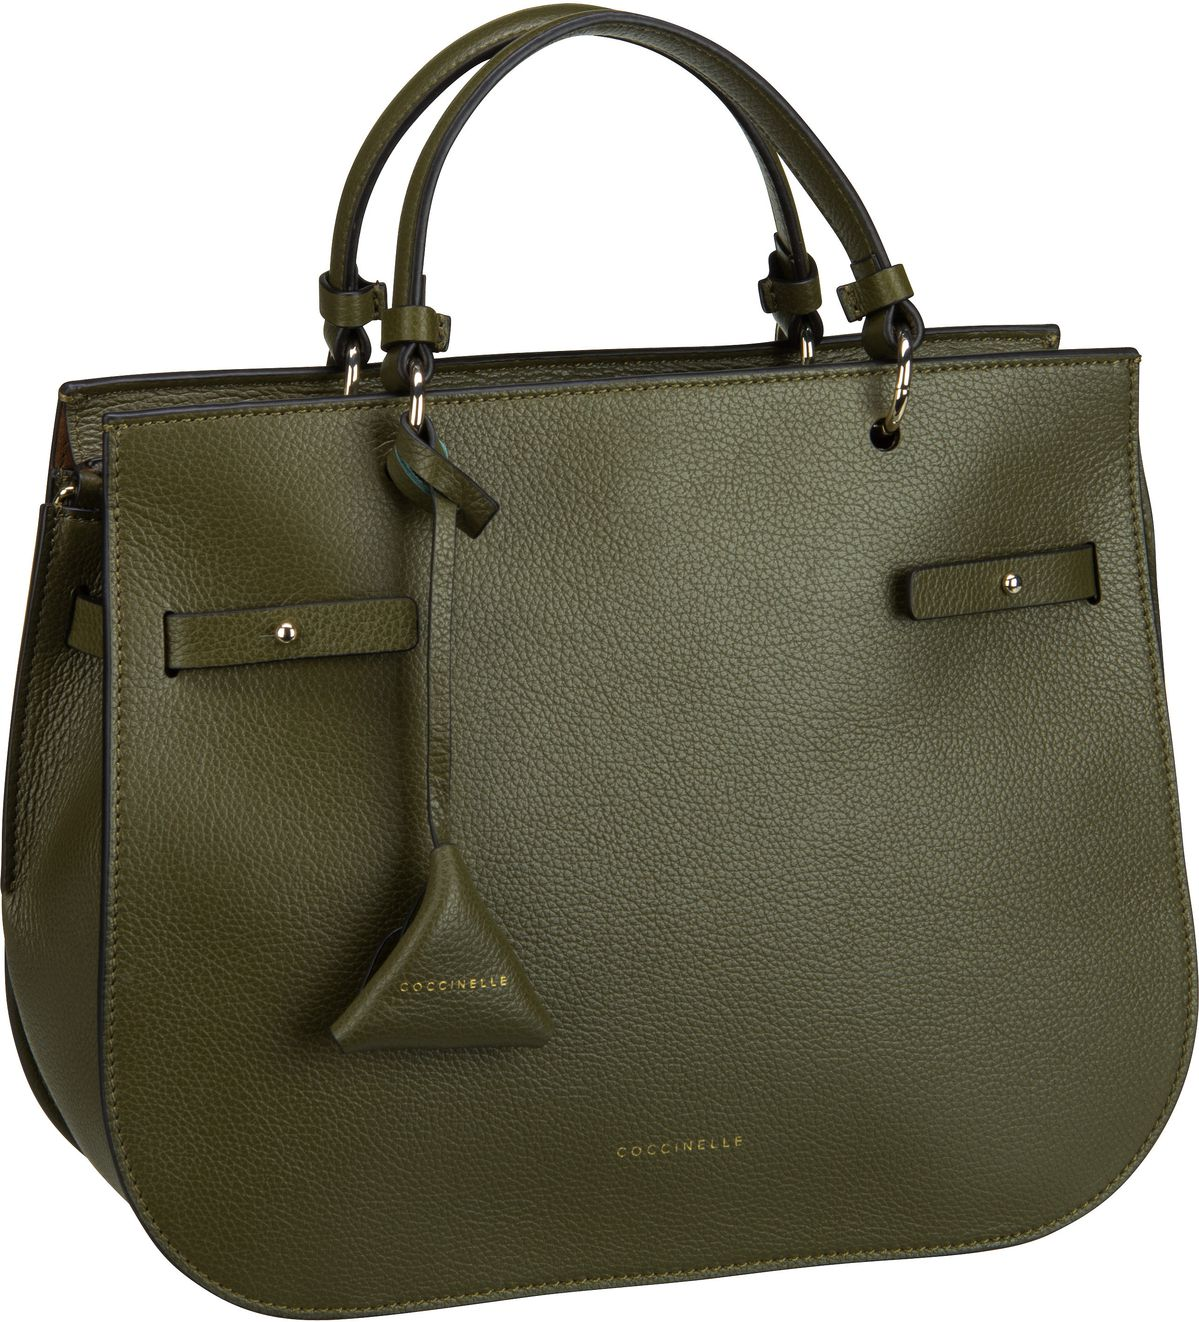 Handtasche Didi 1802 Evergreen